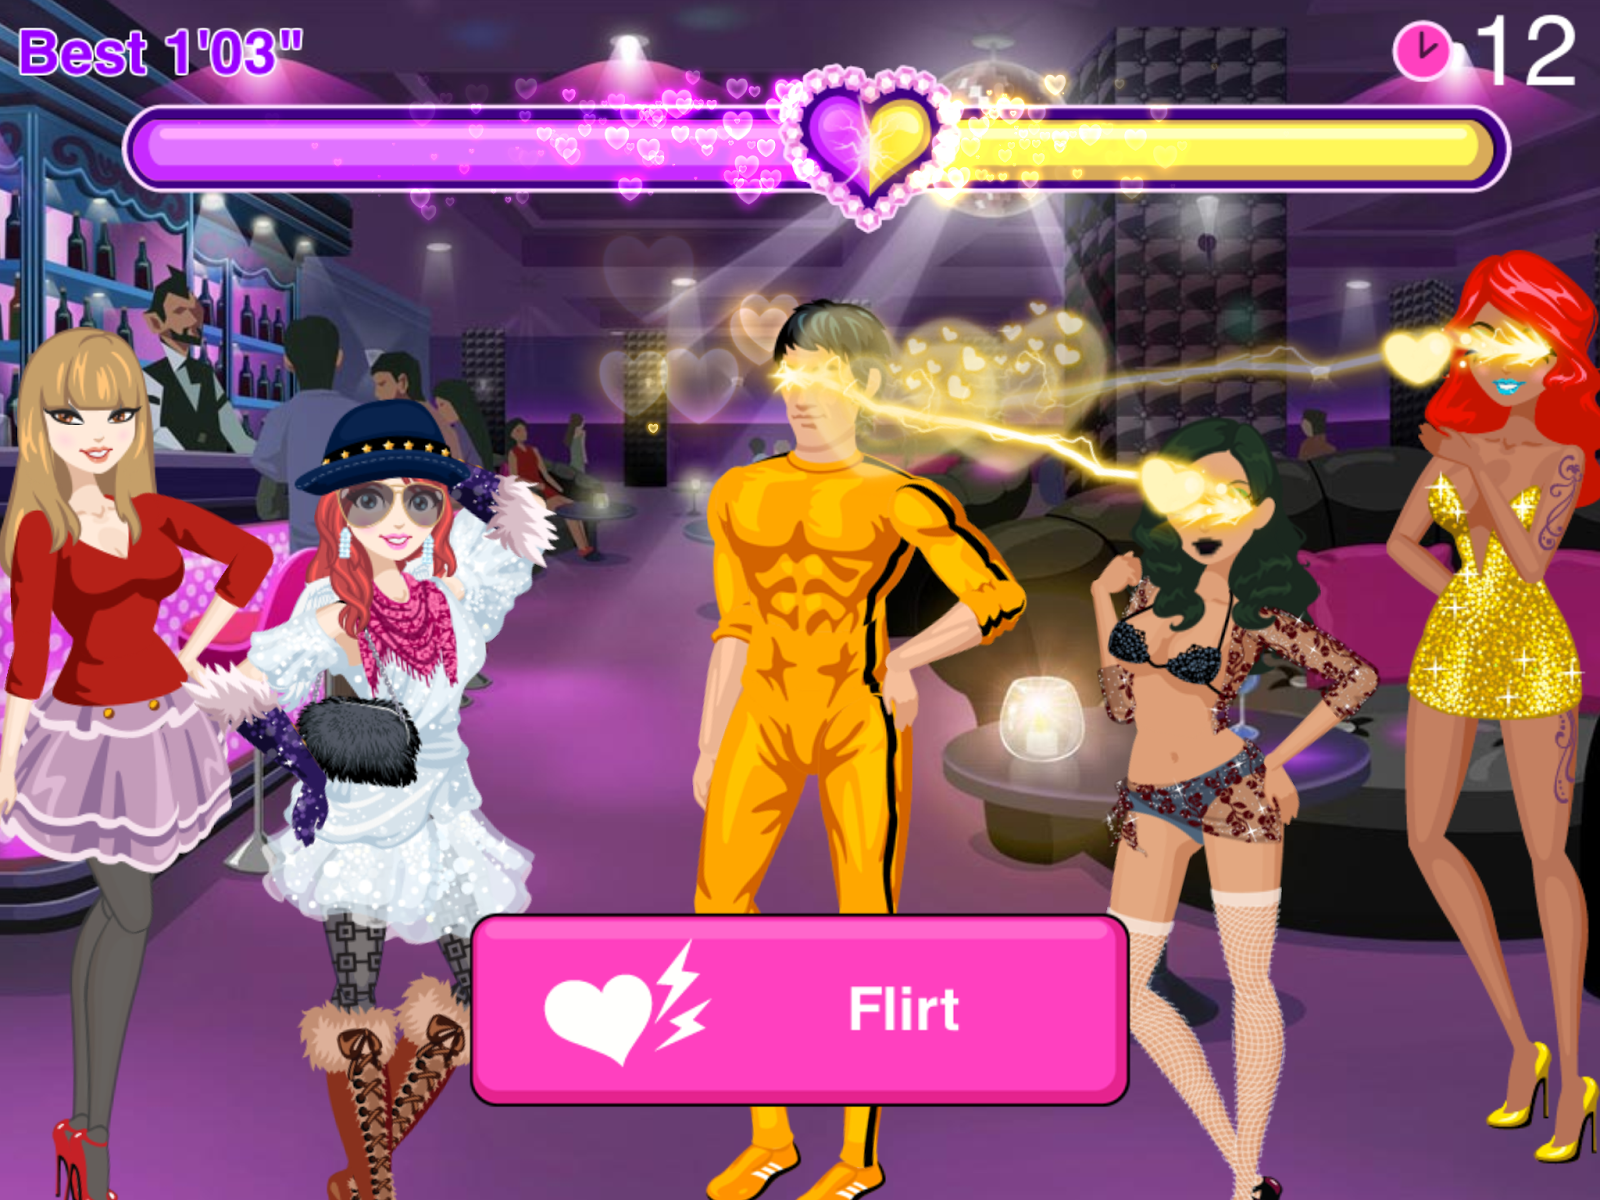 Fashion Games - Free online Games for Girls - m 6